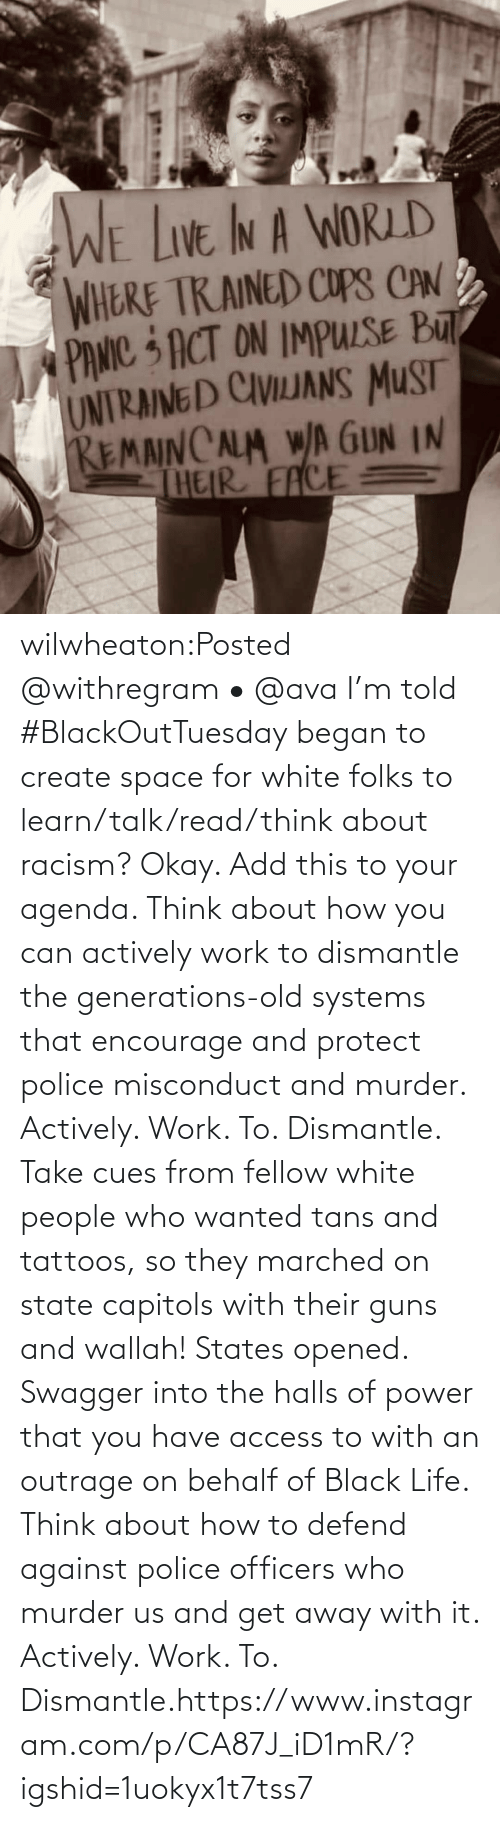 get: wilwheaton:Posted @withregram • @ava I'm told #BlackOutTuesday began to create space for white folks to learn/talk/read/think about racism? Okay. Add this to your agenda. Think about how you can actively work to dismantle the generations-old systems that encourage and protect police misconduct and murder. Actively. Work. To. Dismantle. Take cues from fellow white people who wanted tans and tattoos, so they marched on state capitols with their guns and wallah! States opened. Swagger into the halls of power that you have access to with an outrage on behalf of Black Life. Think about how to defend against police officers who murder us and get away with it. Actively. Work. To. Dismantle.https://www.instagram.com/p/CA87J_iD1mR/?igshid=1uokyx1t7tss7